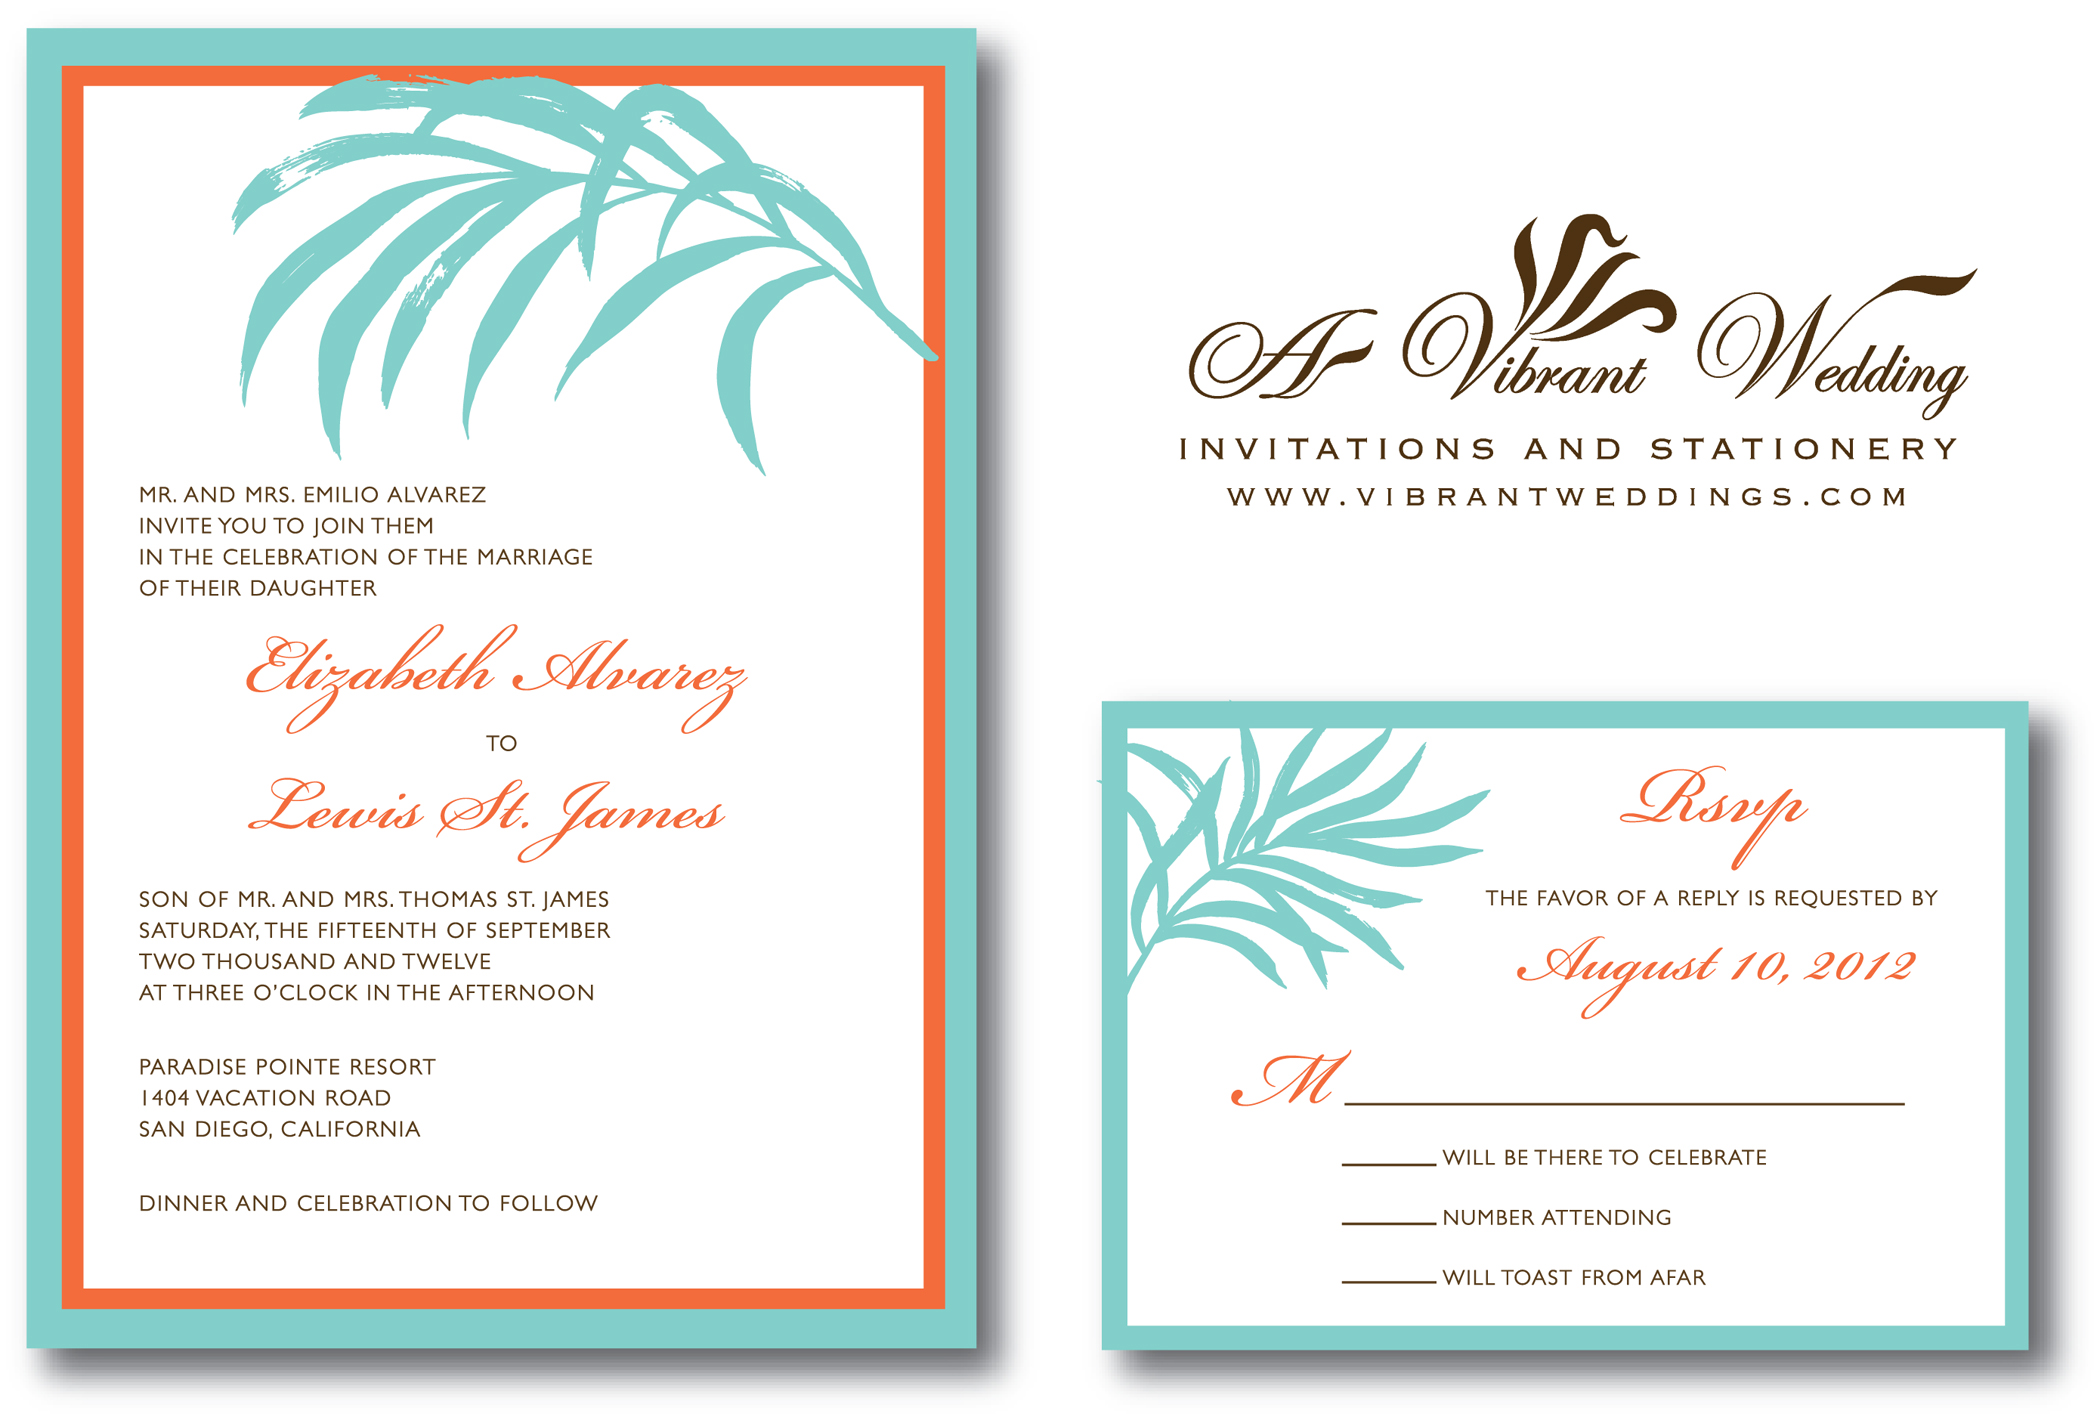 tiffany blue wedding invitation  u2013 a vibrant wedding